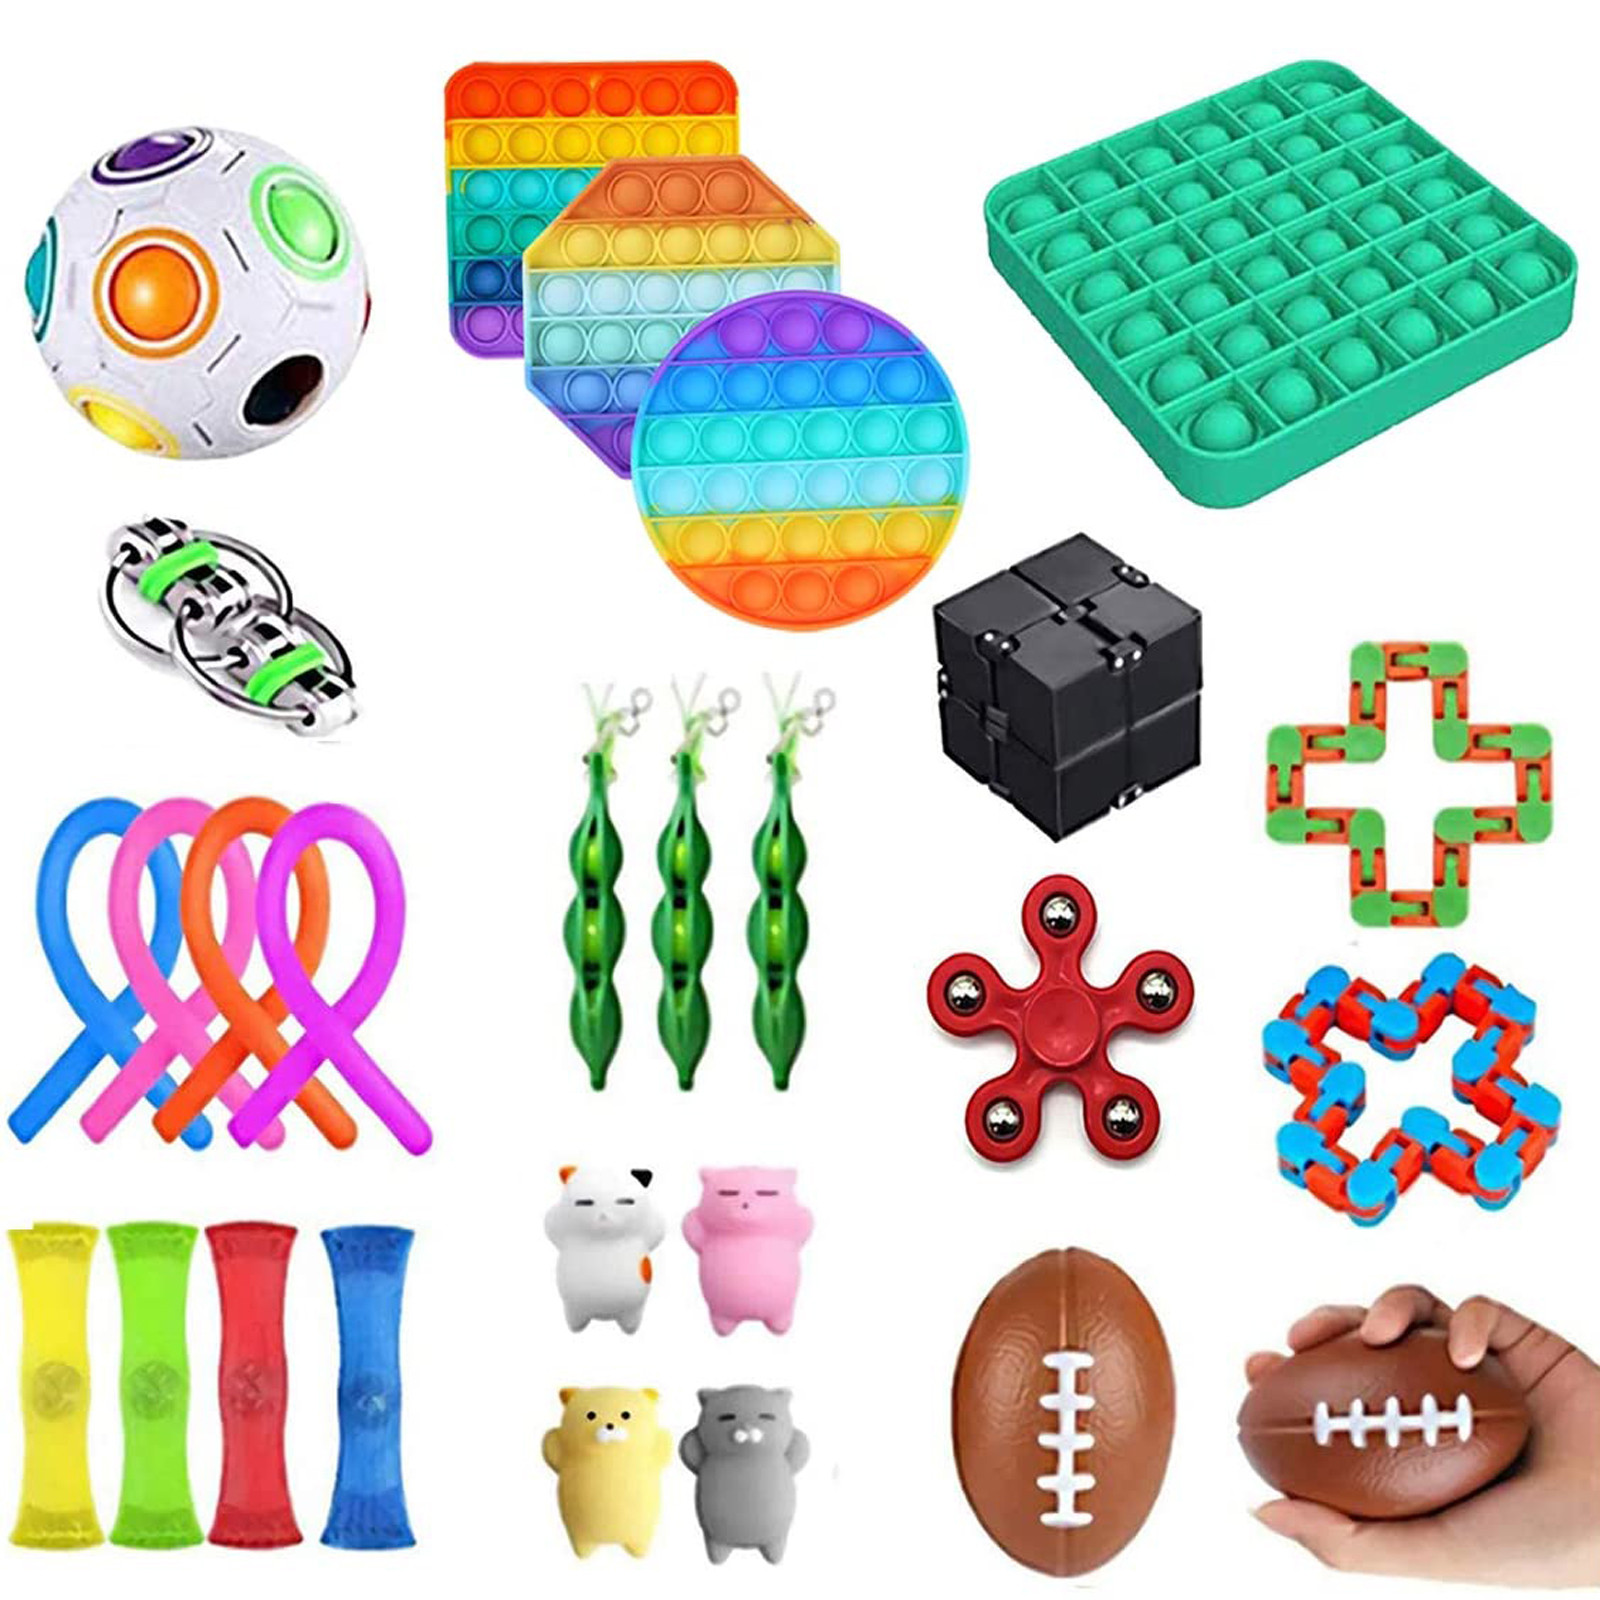 Fidget-Toys Anti-Stress-Set Sensory Gift-Pack Strings Relief Squishy Adults Kids Stretchy img4